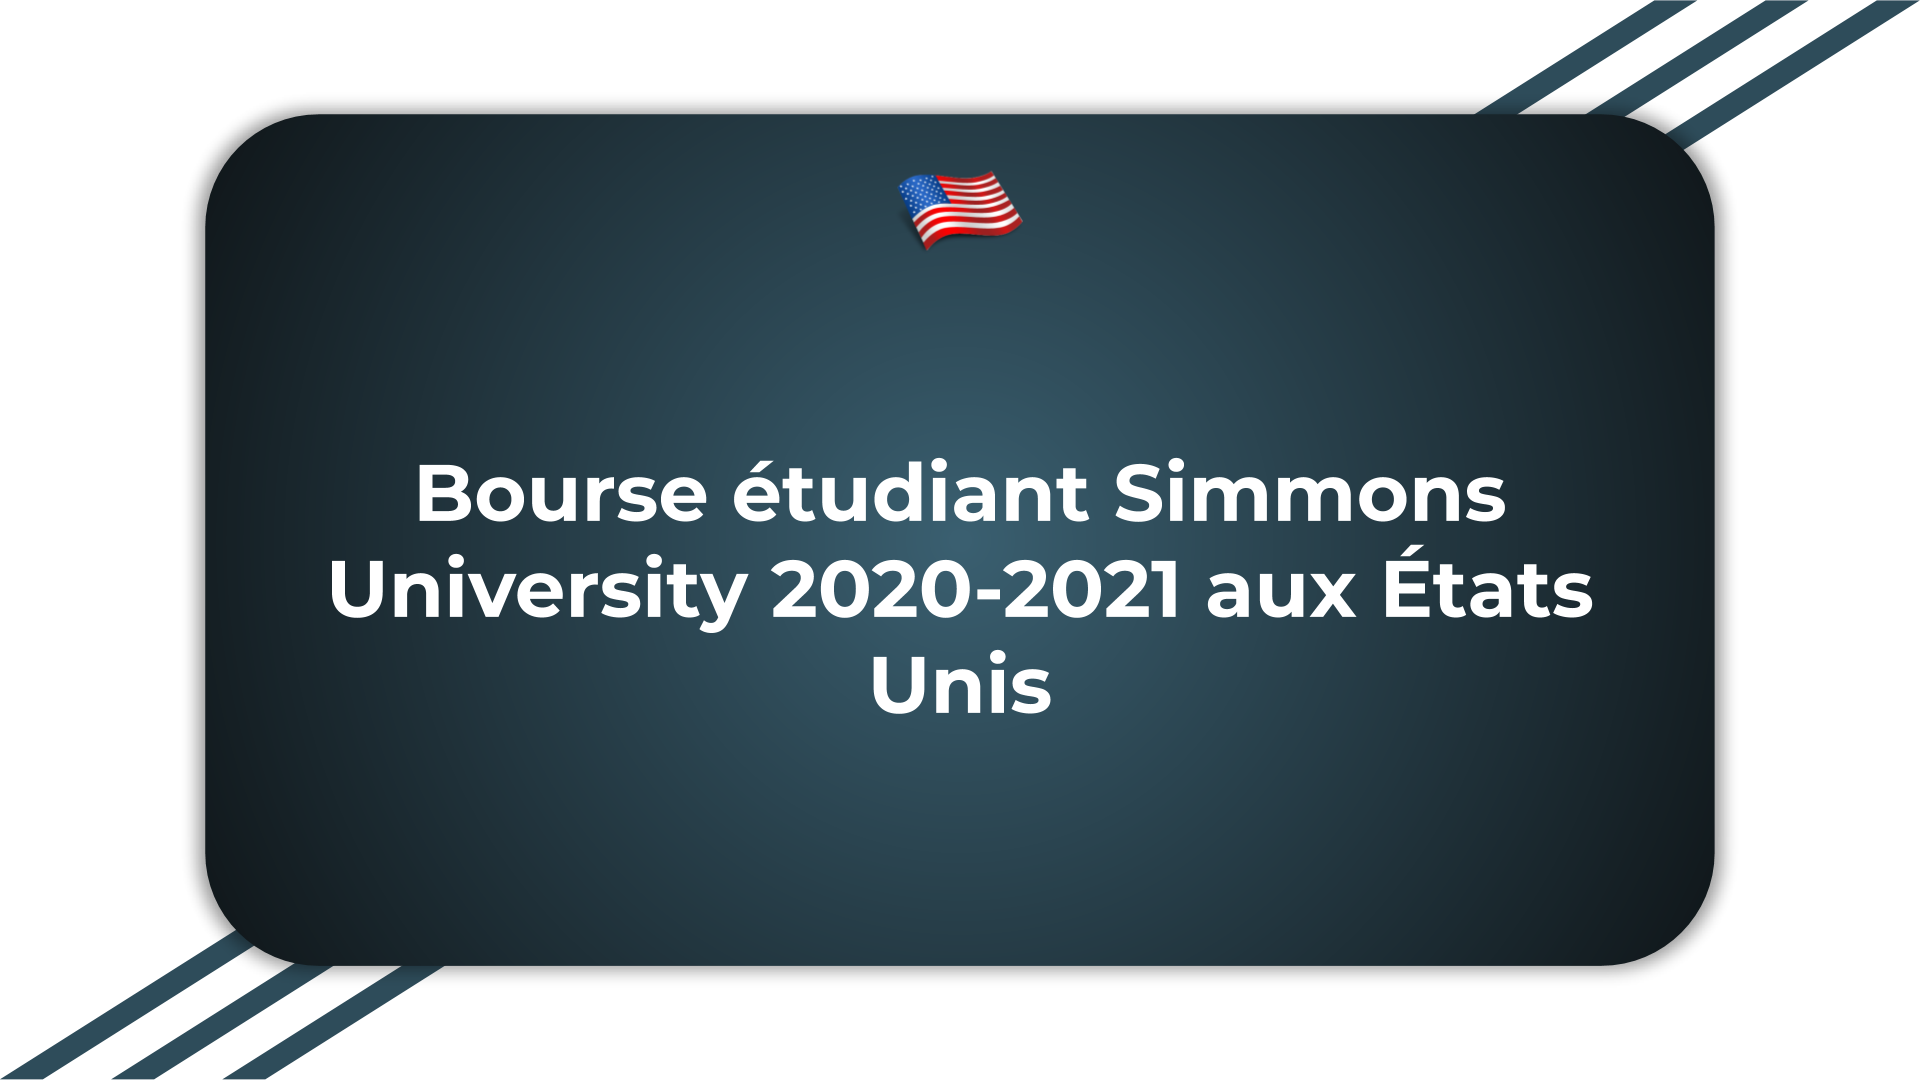 Bourse étudiant Simmons University